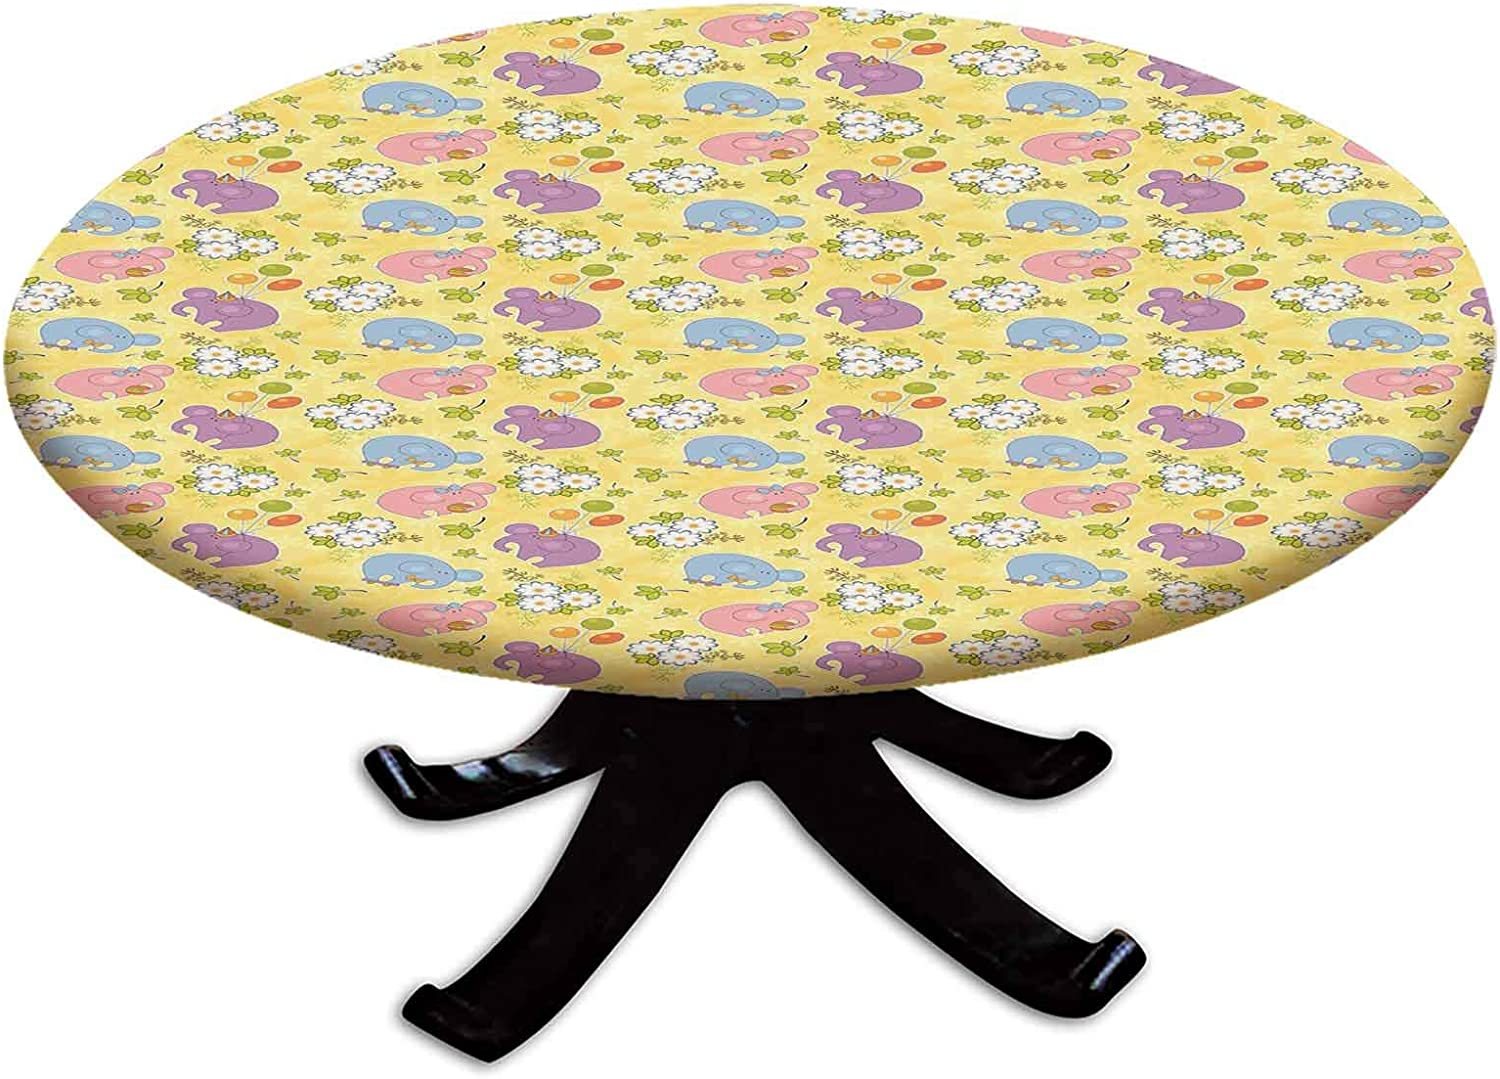 Elastic 年間定番 Edged Polyester Fitted Table Cover Blossoming Fl 限定モデル Cartoon